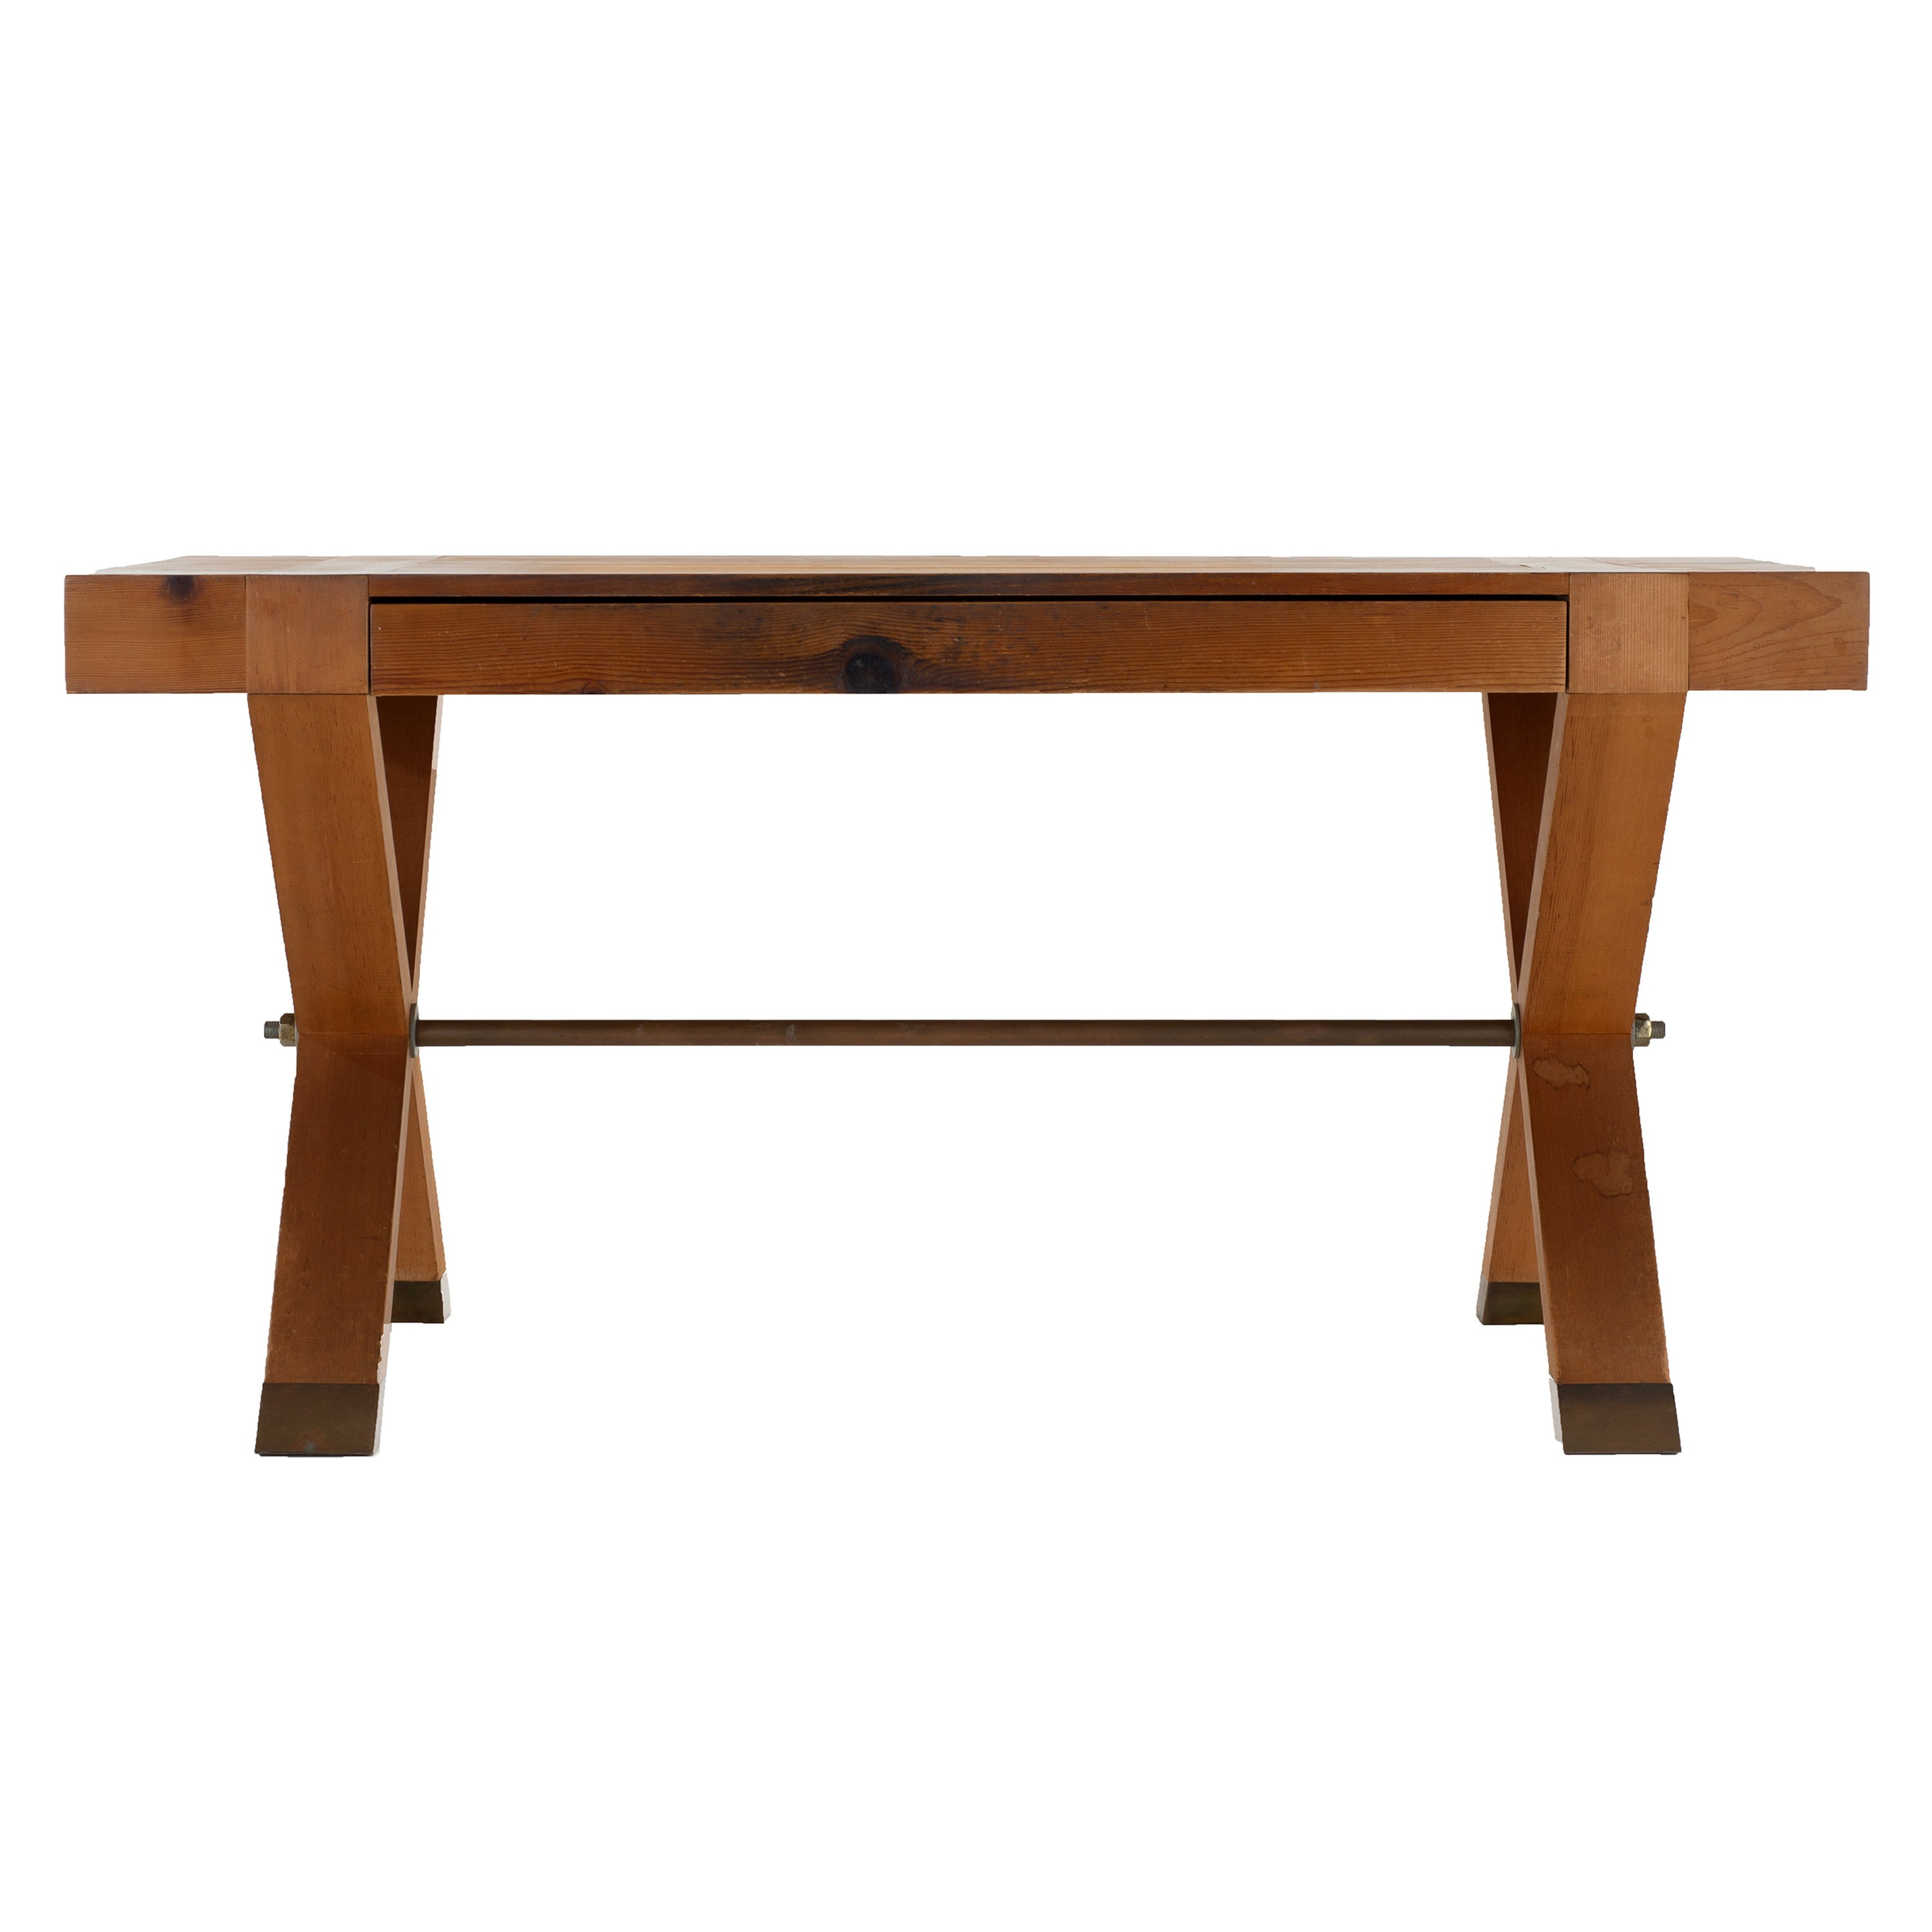 John Dickinson Desk and or Console